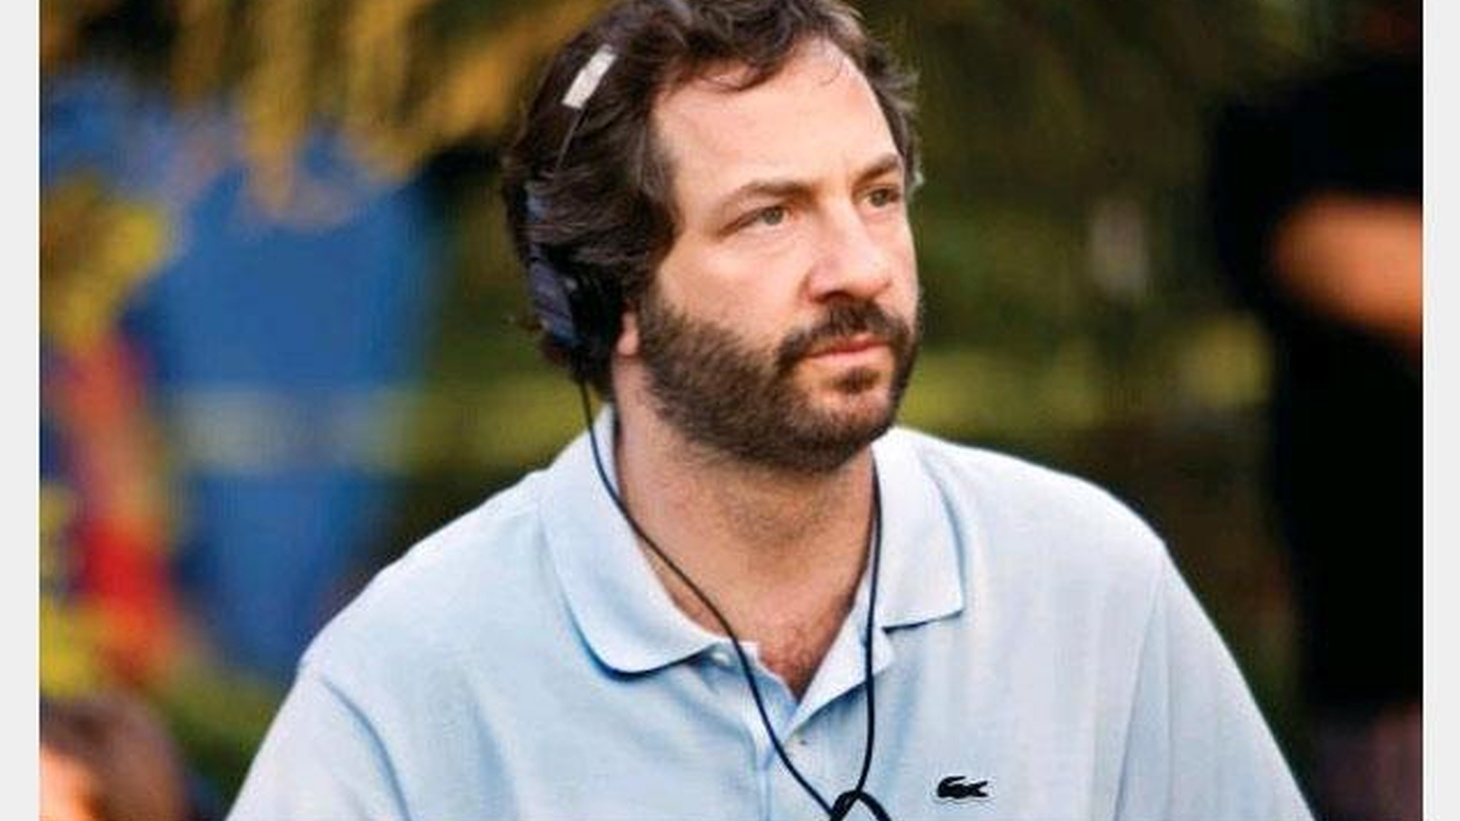 Elvis hosts writer-producer-director Judd Apatow (Knocked Up, The 40 Year Old Virgin) whose latest film is Funny People, starring Seth Rogen and Adam Sandler.